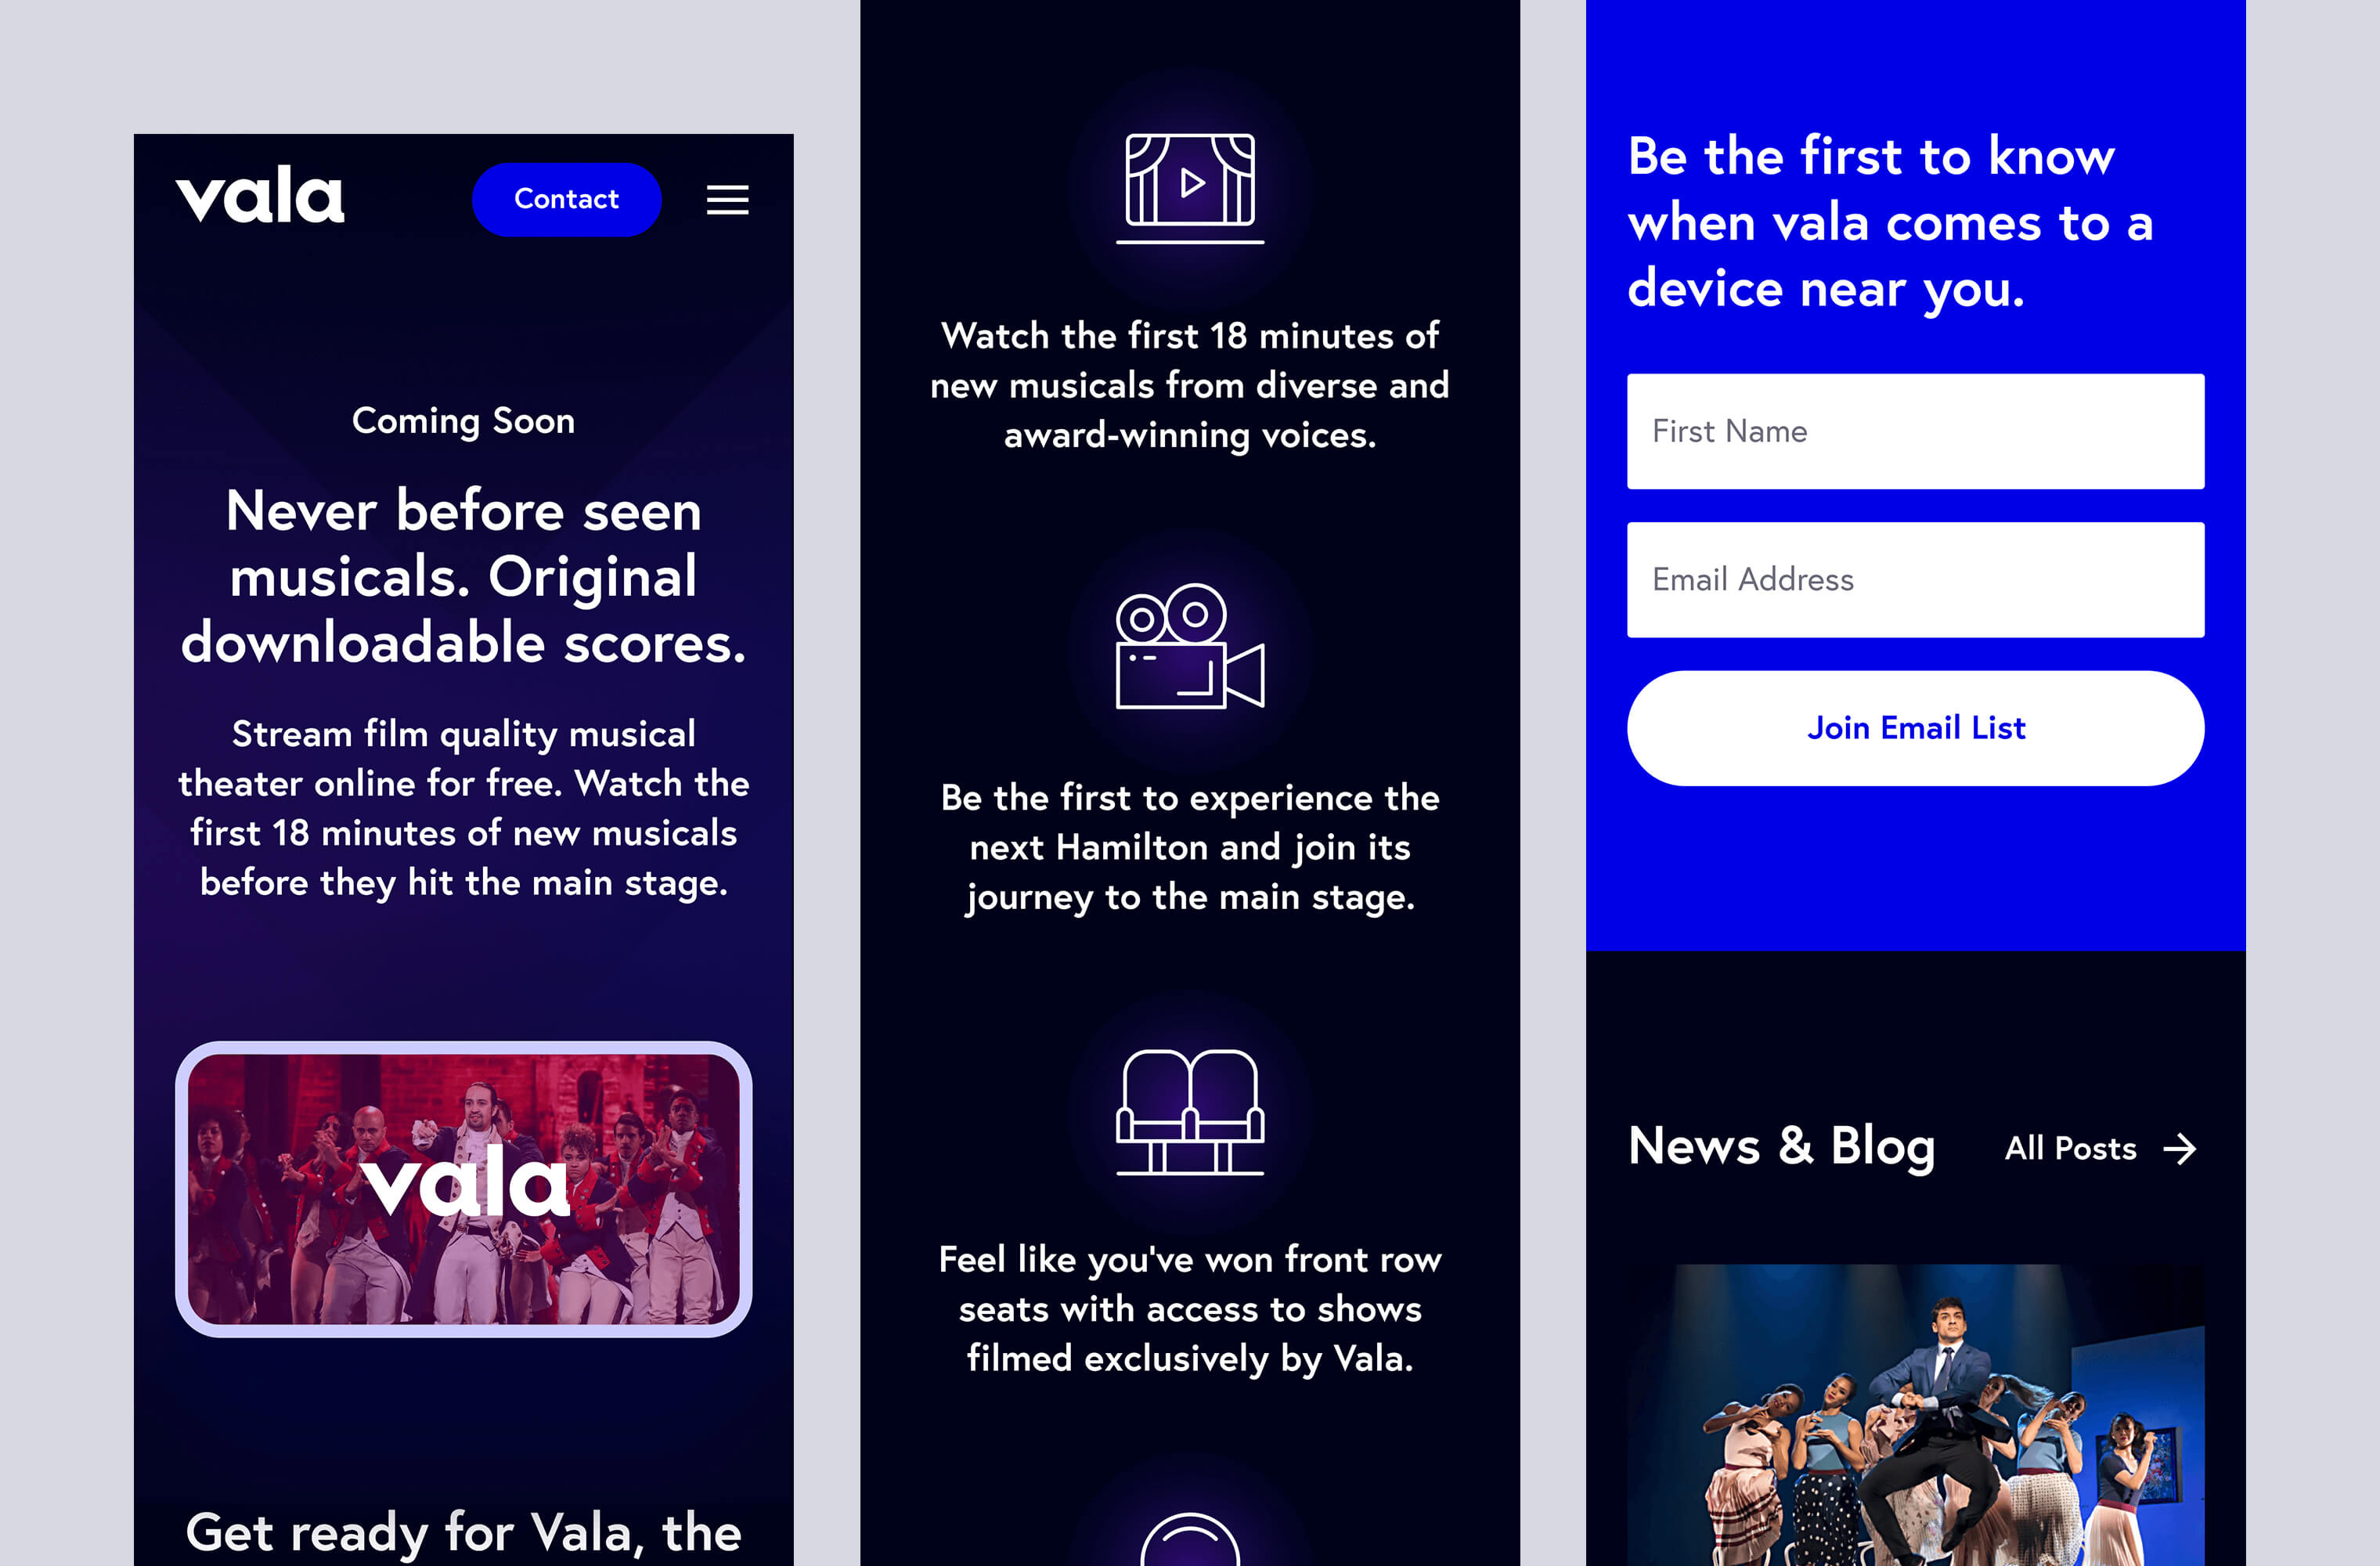 Mobile 'Homepage' for the Vala website